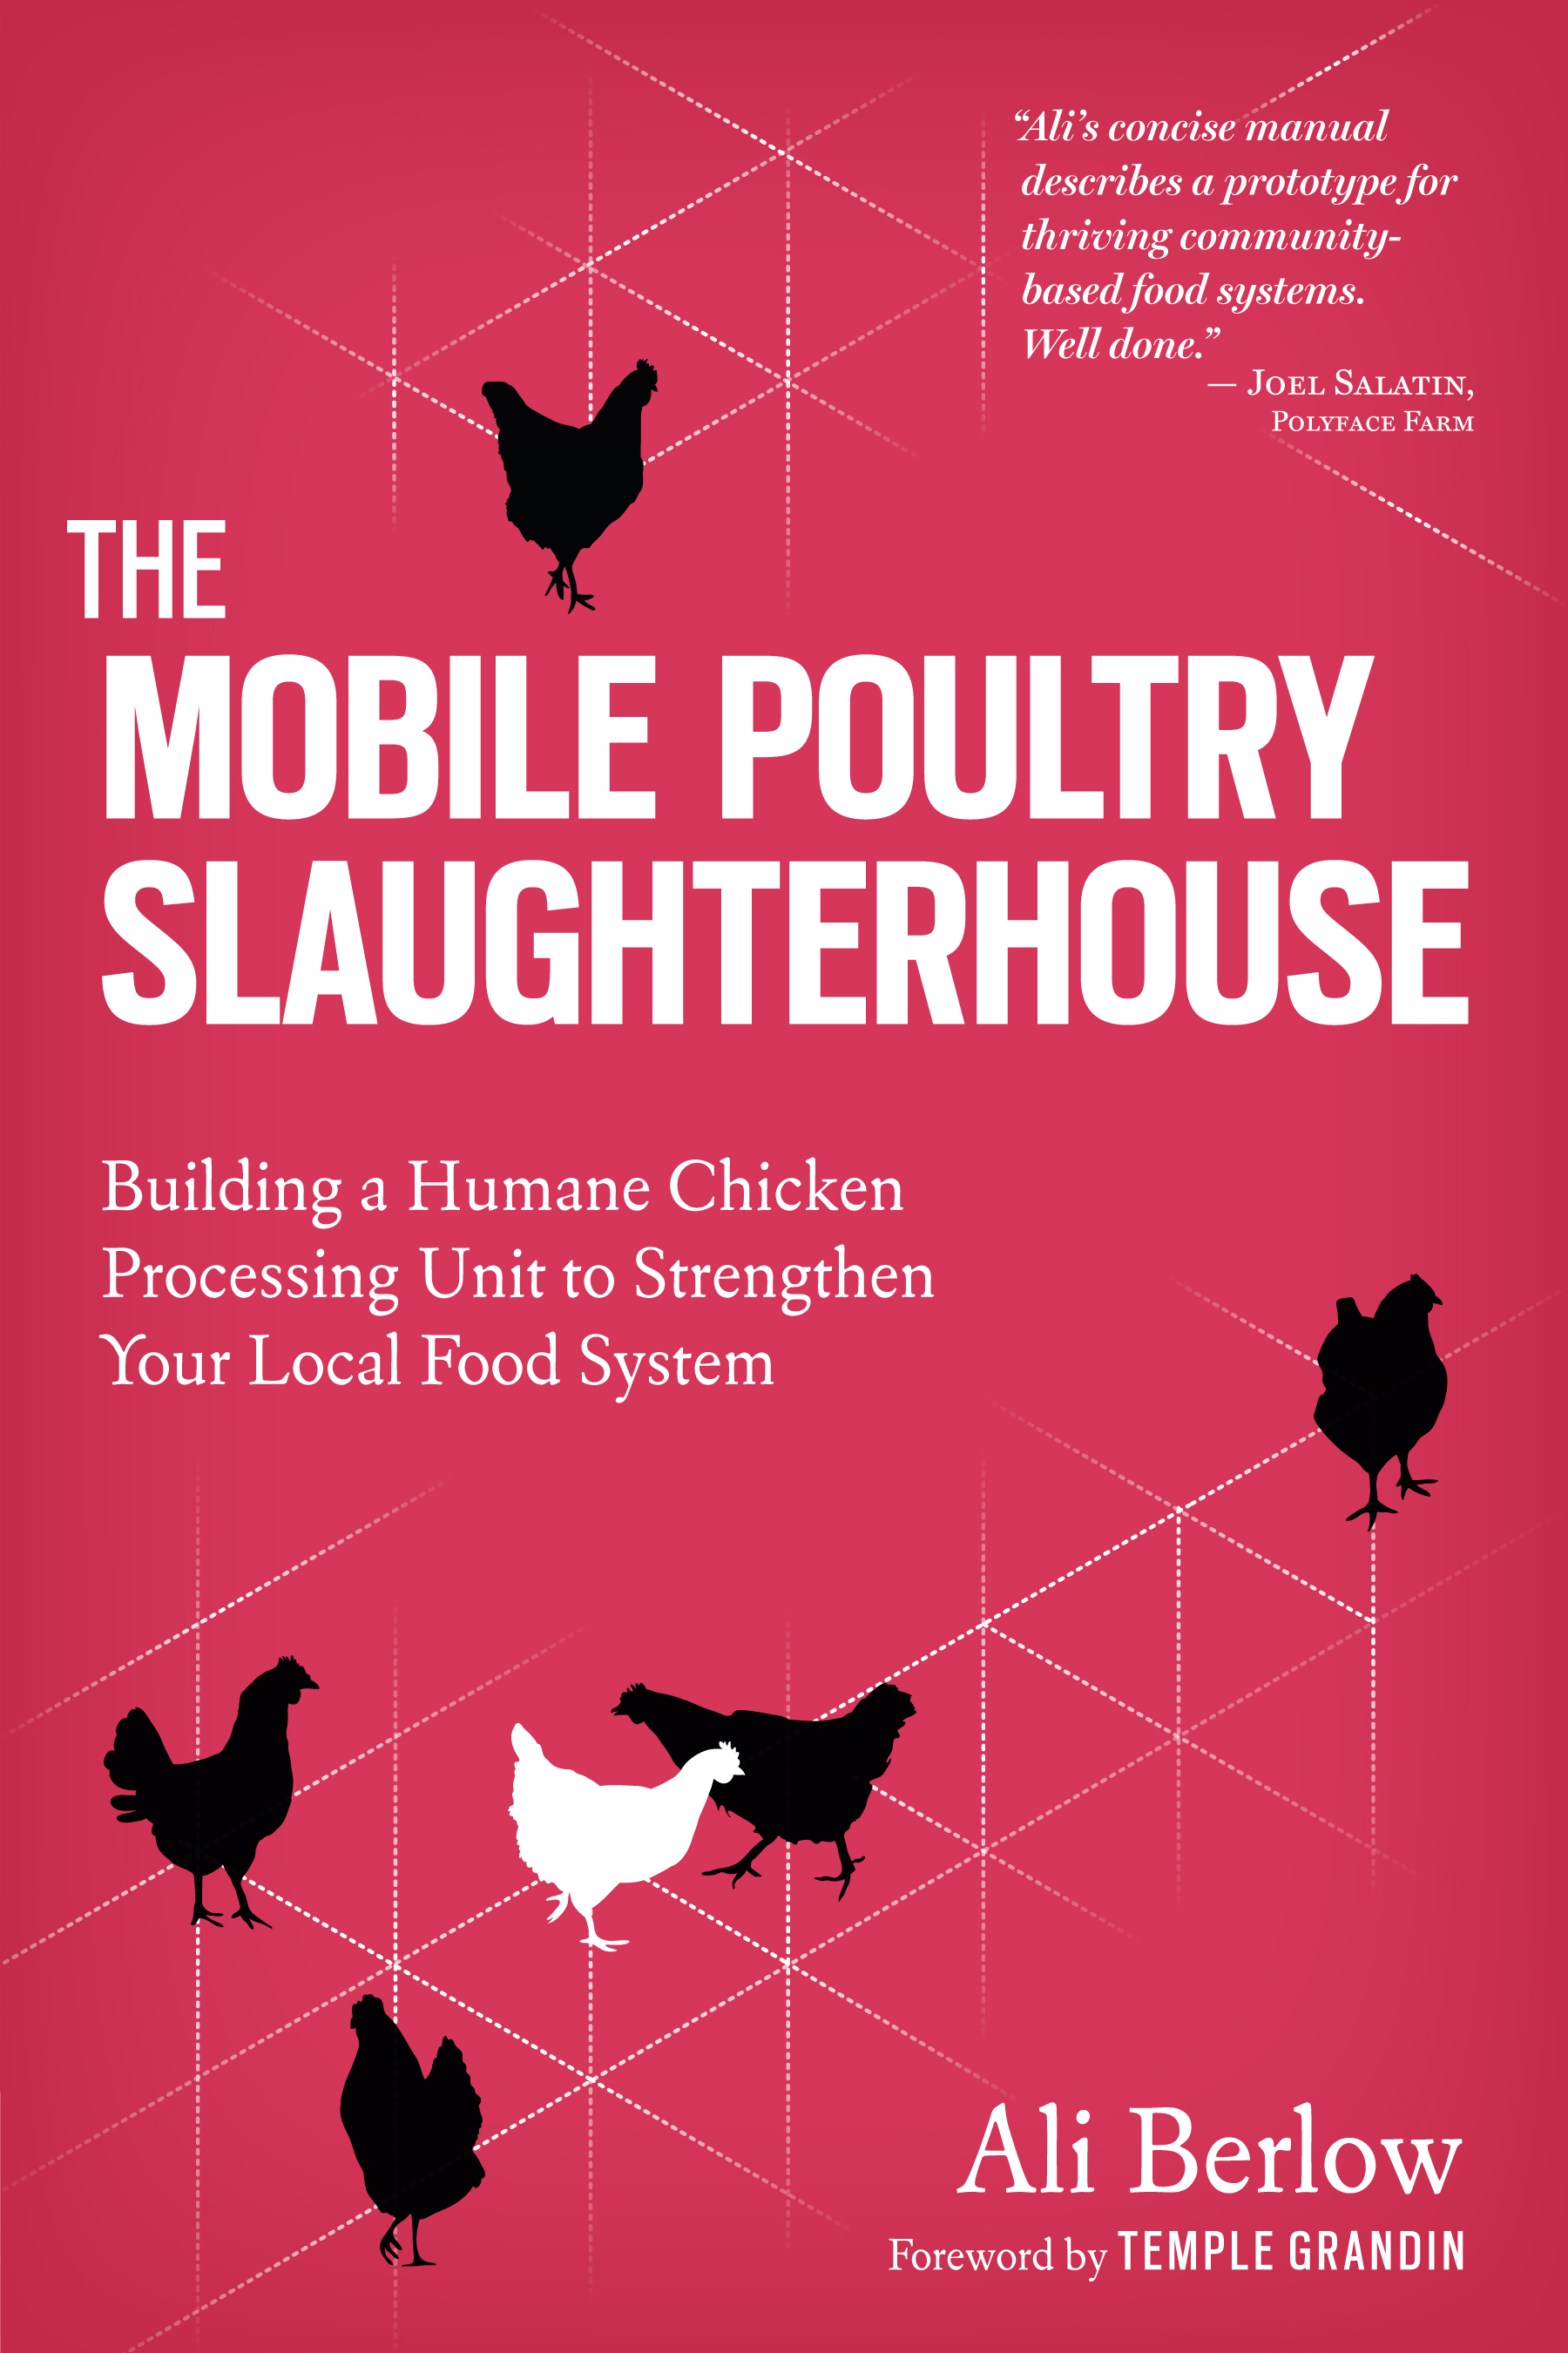 The Mobile Poultry Slaughterhouse Building a Humane Chicken-Processing Unit to Strengthen Your Local Food System - Ali Berlow